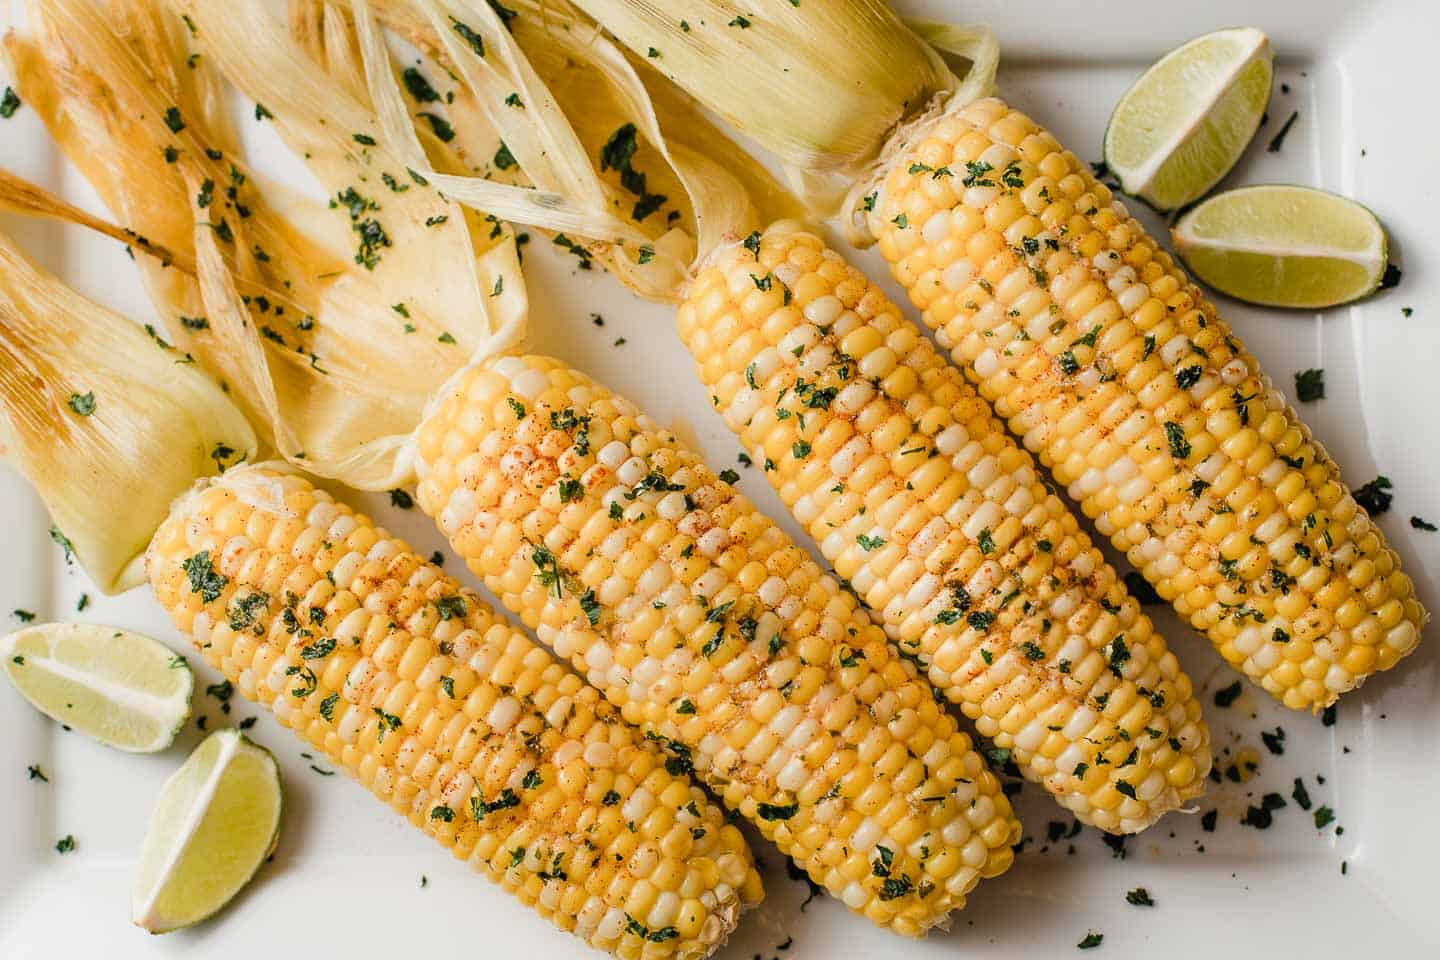 Corn on the cob with melted butter and herbs.